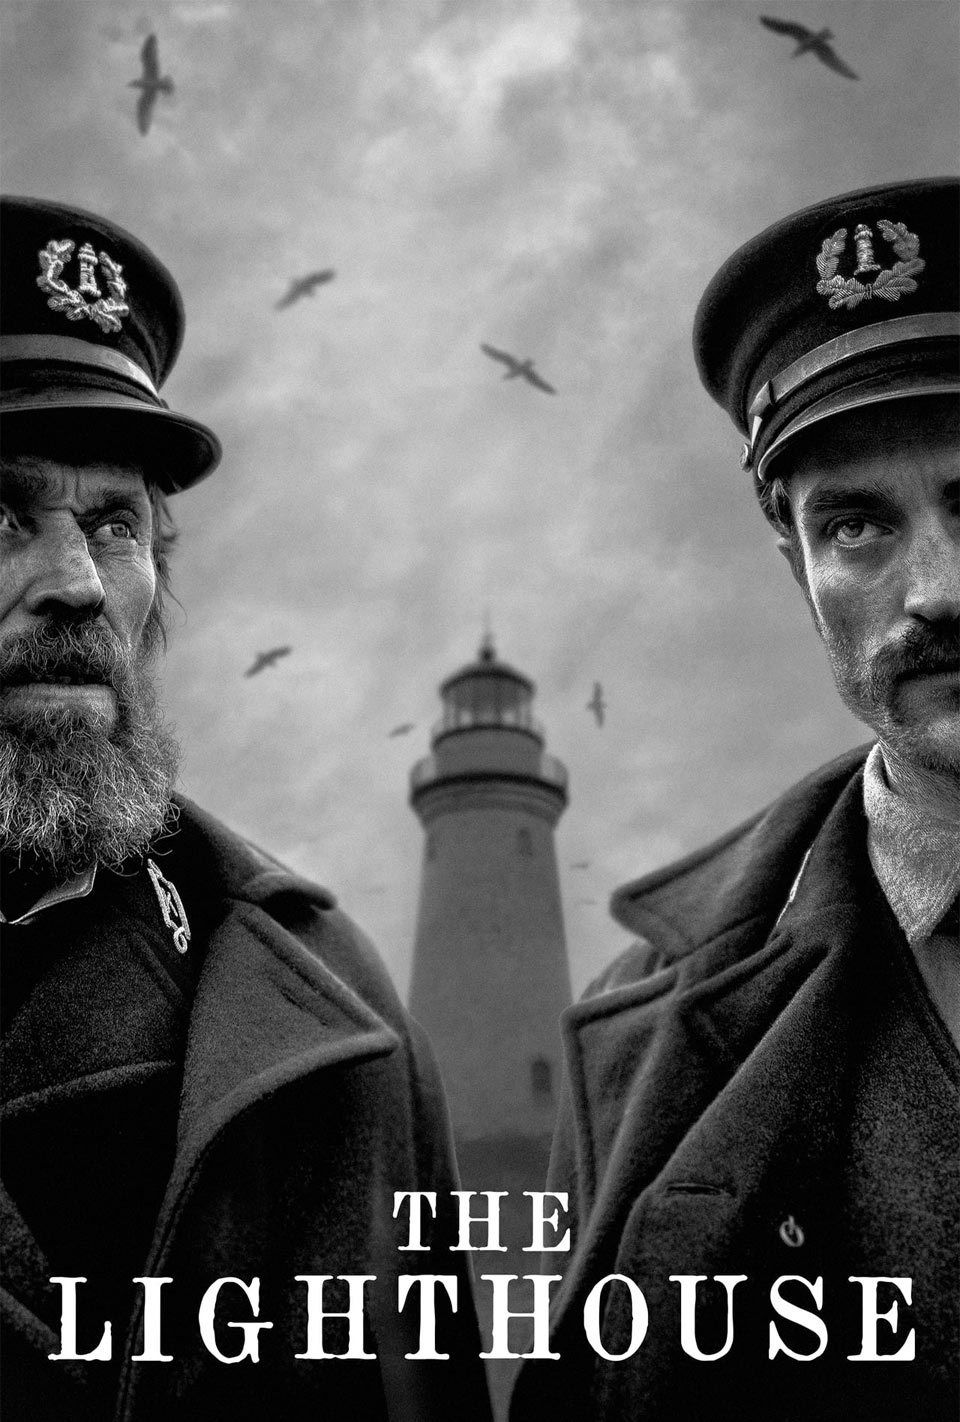 Read The The Lighthouse 2019 Script Written By Robert Eggers And